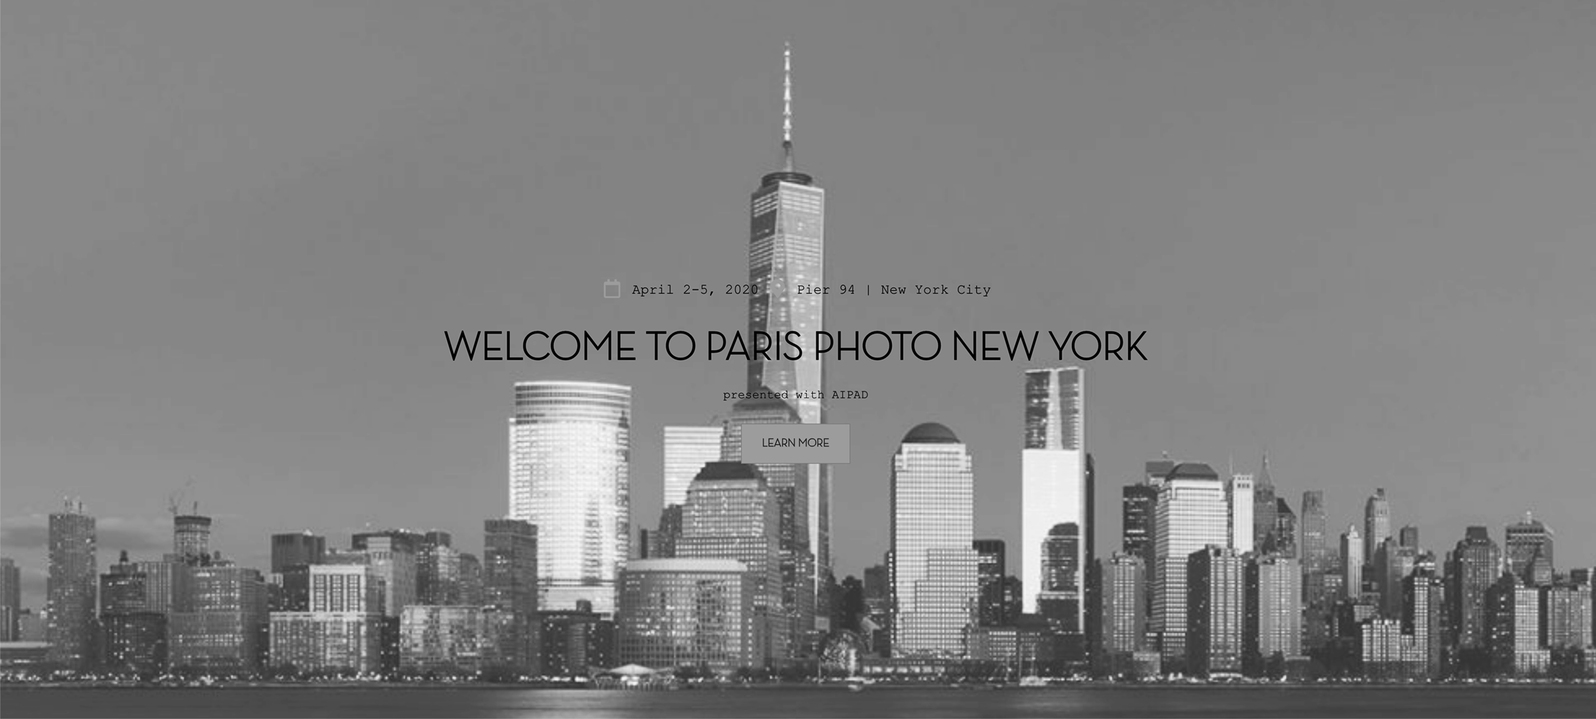 Jeanne Szilit 2020  PARIS PHOTO NEW YORK (AIPAD) postponed